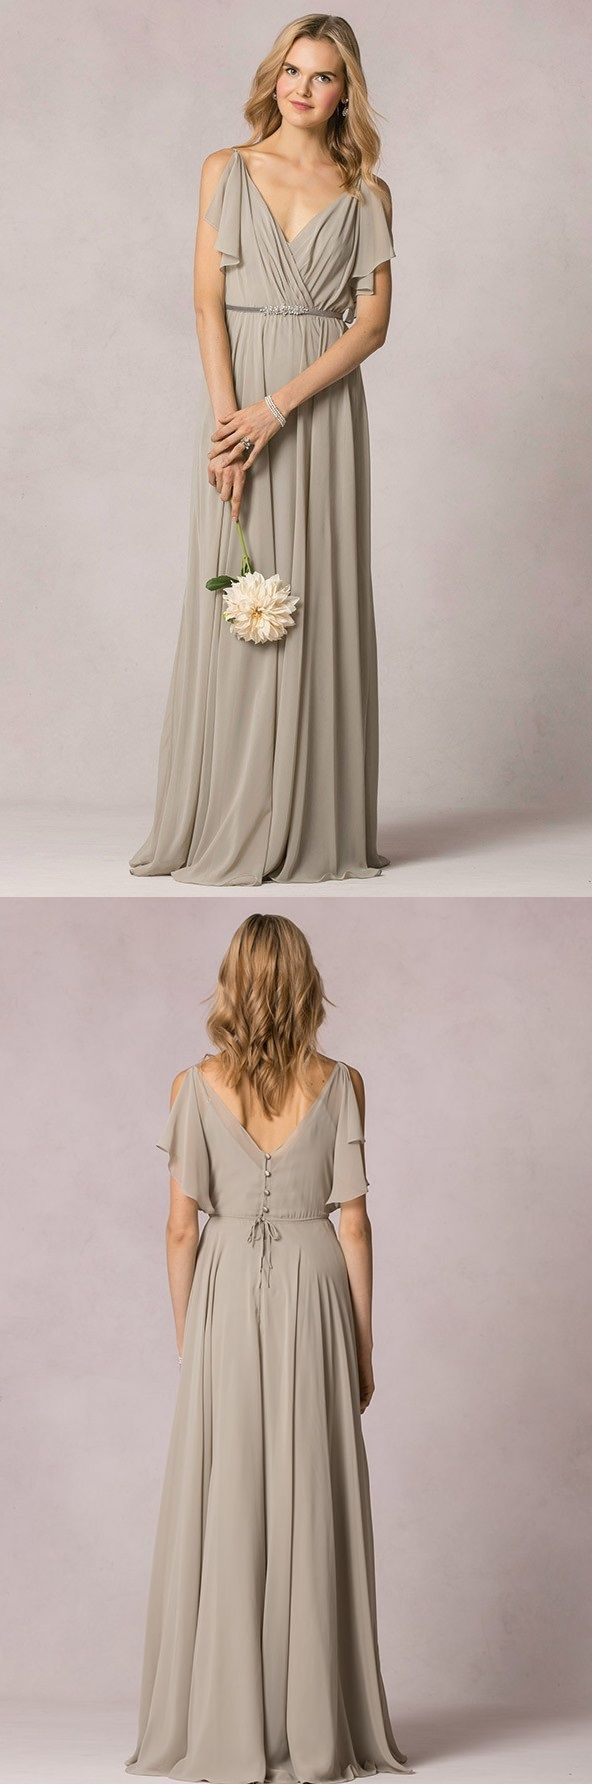 Casual V Neck Pleated A-line Long Chiffon Bridesmaid Dress with Sash